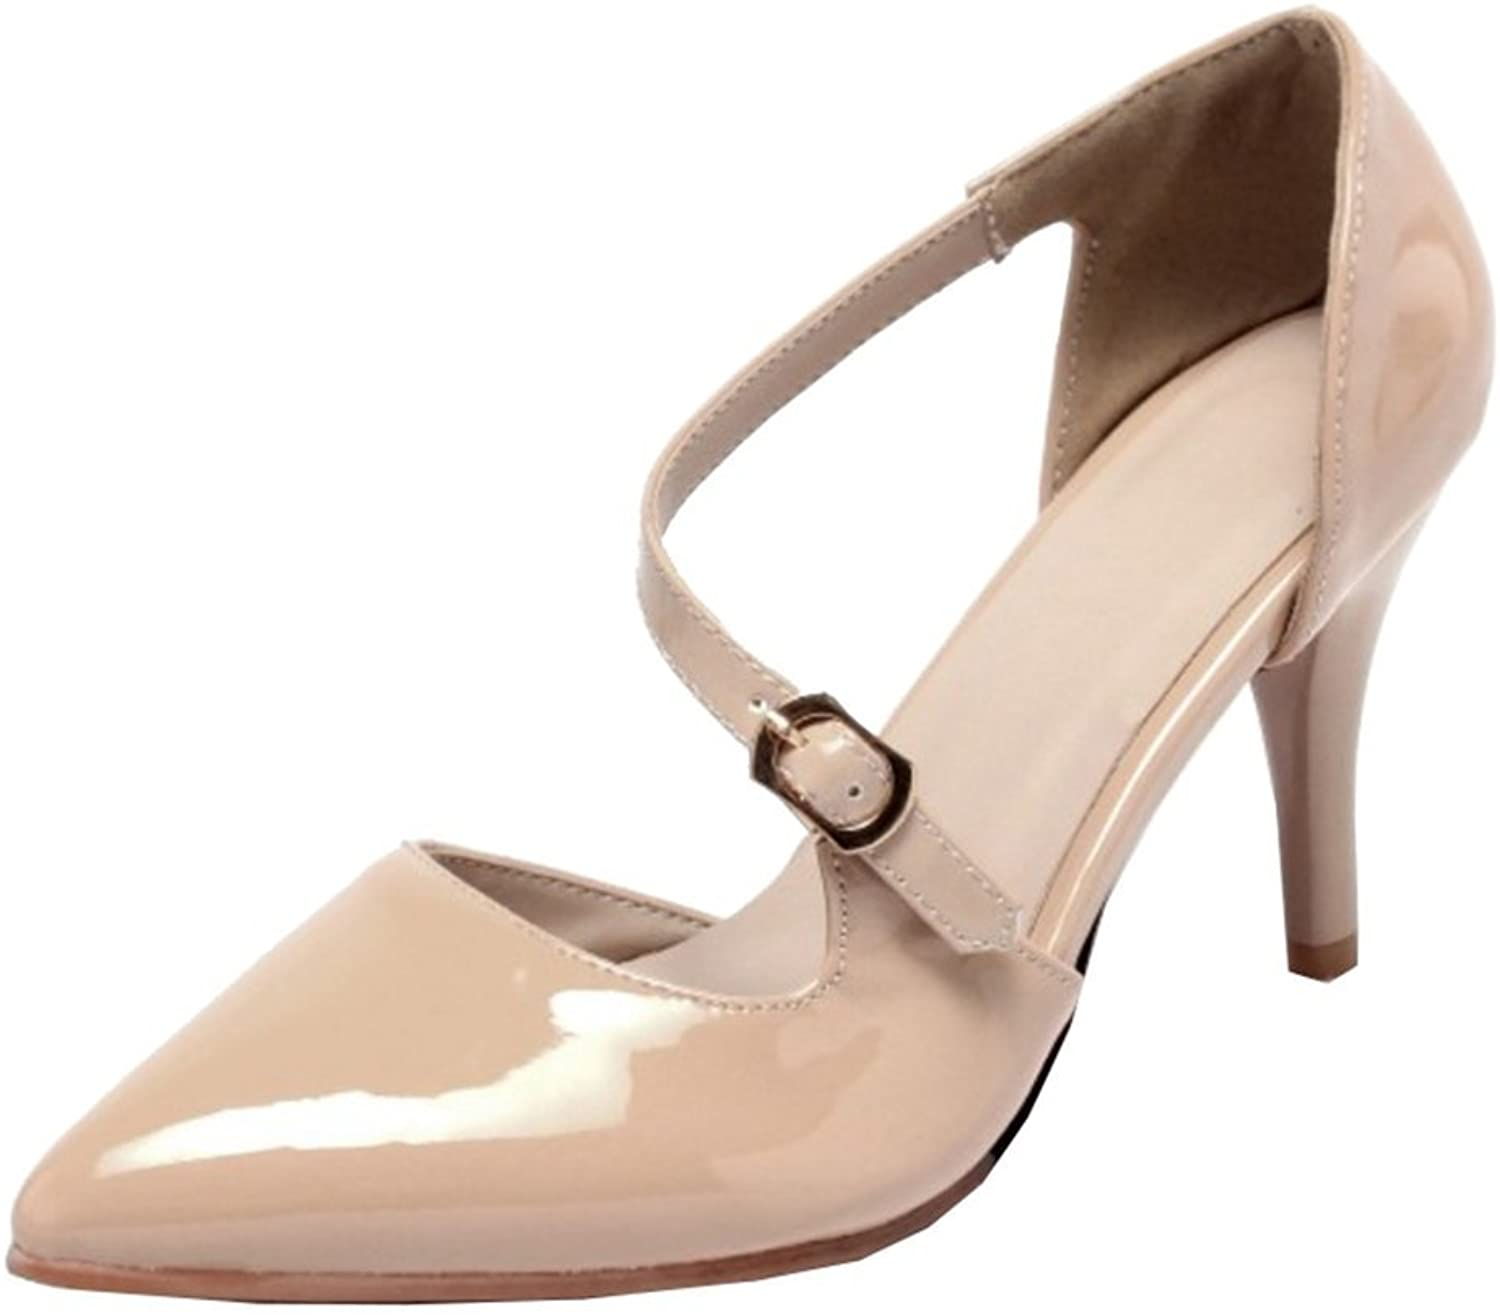 Mo Joc Pumps with Thin Heel and Pointed Toe Working Sandals with Large